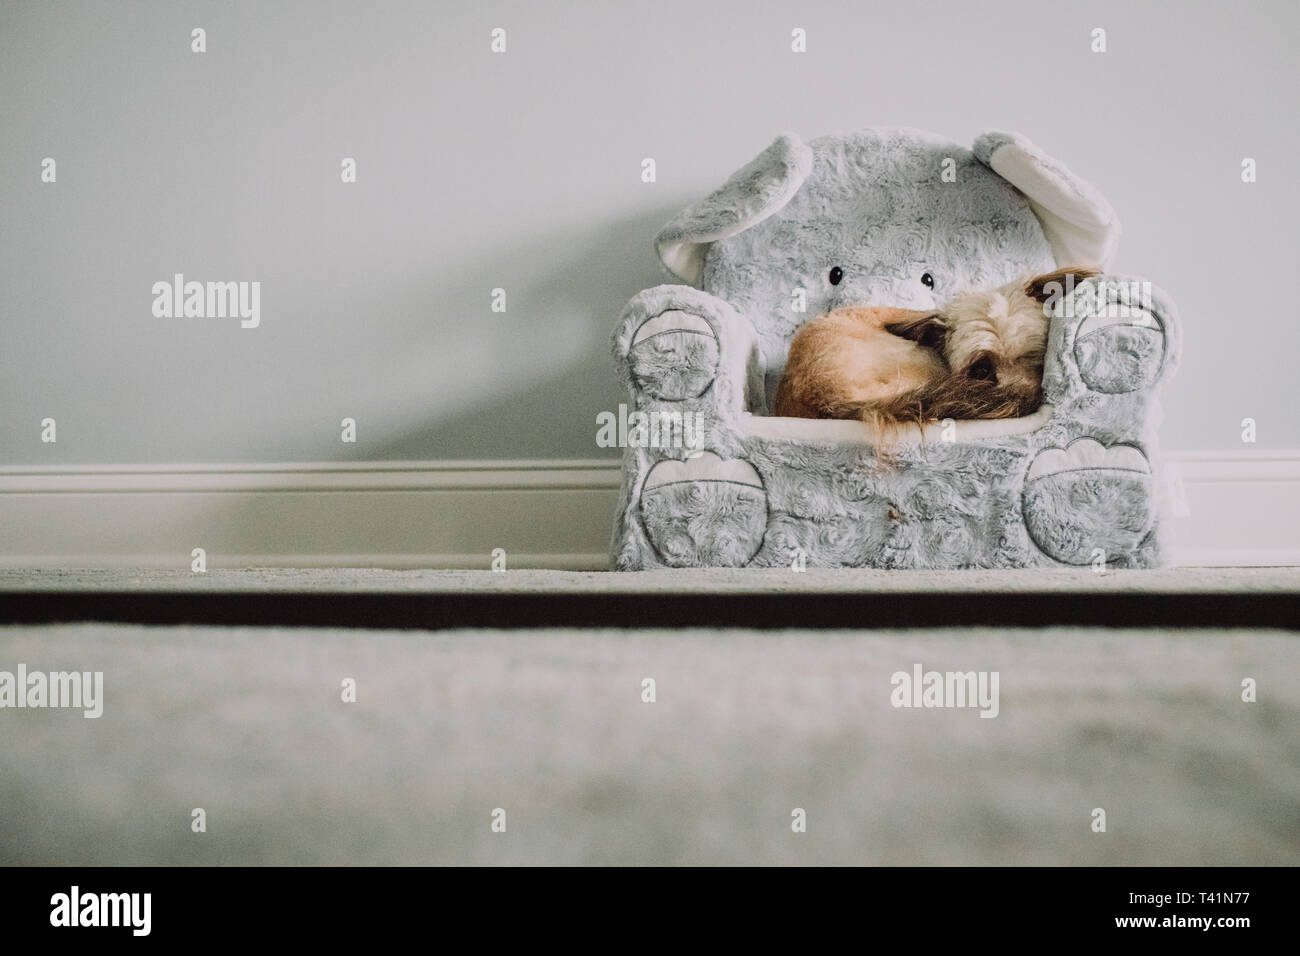 Tiny dog in tiny chair - Stock Image